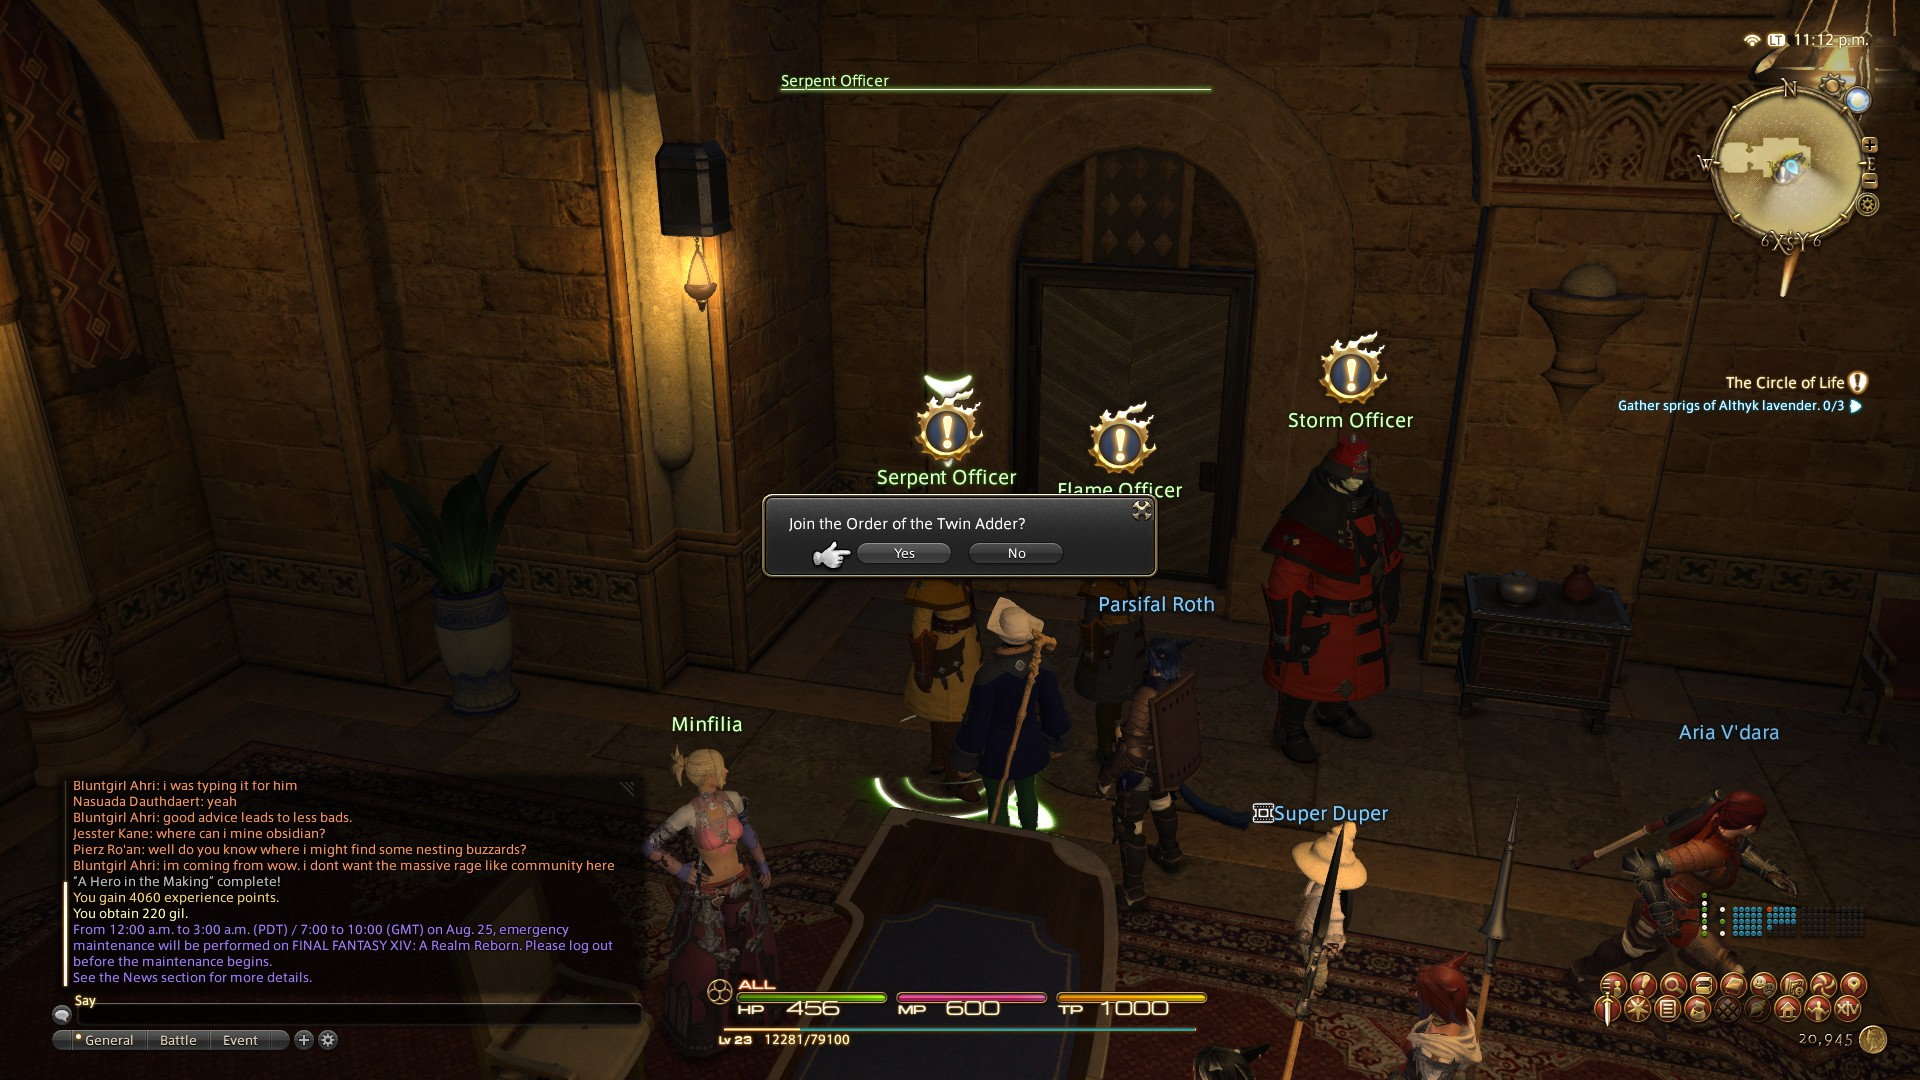 Final Fantasy XIV - Grand Companies Detailed